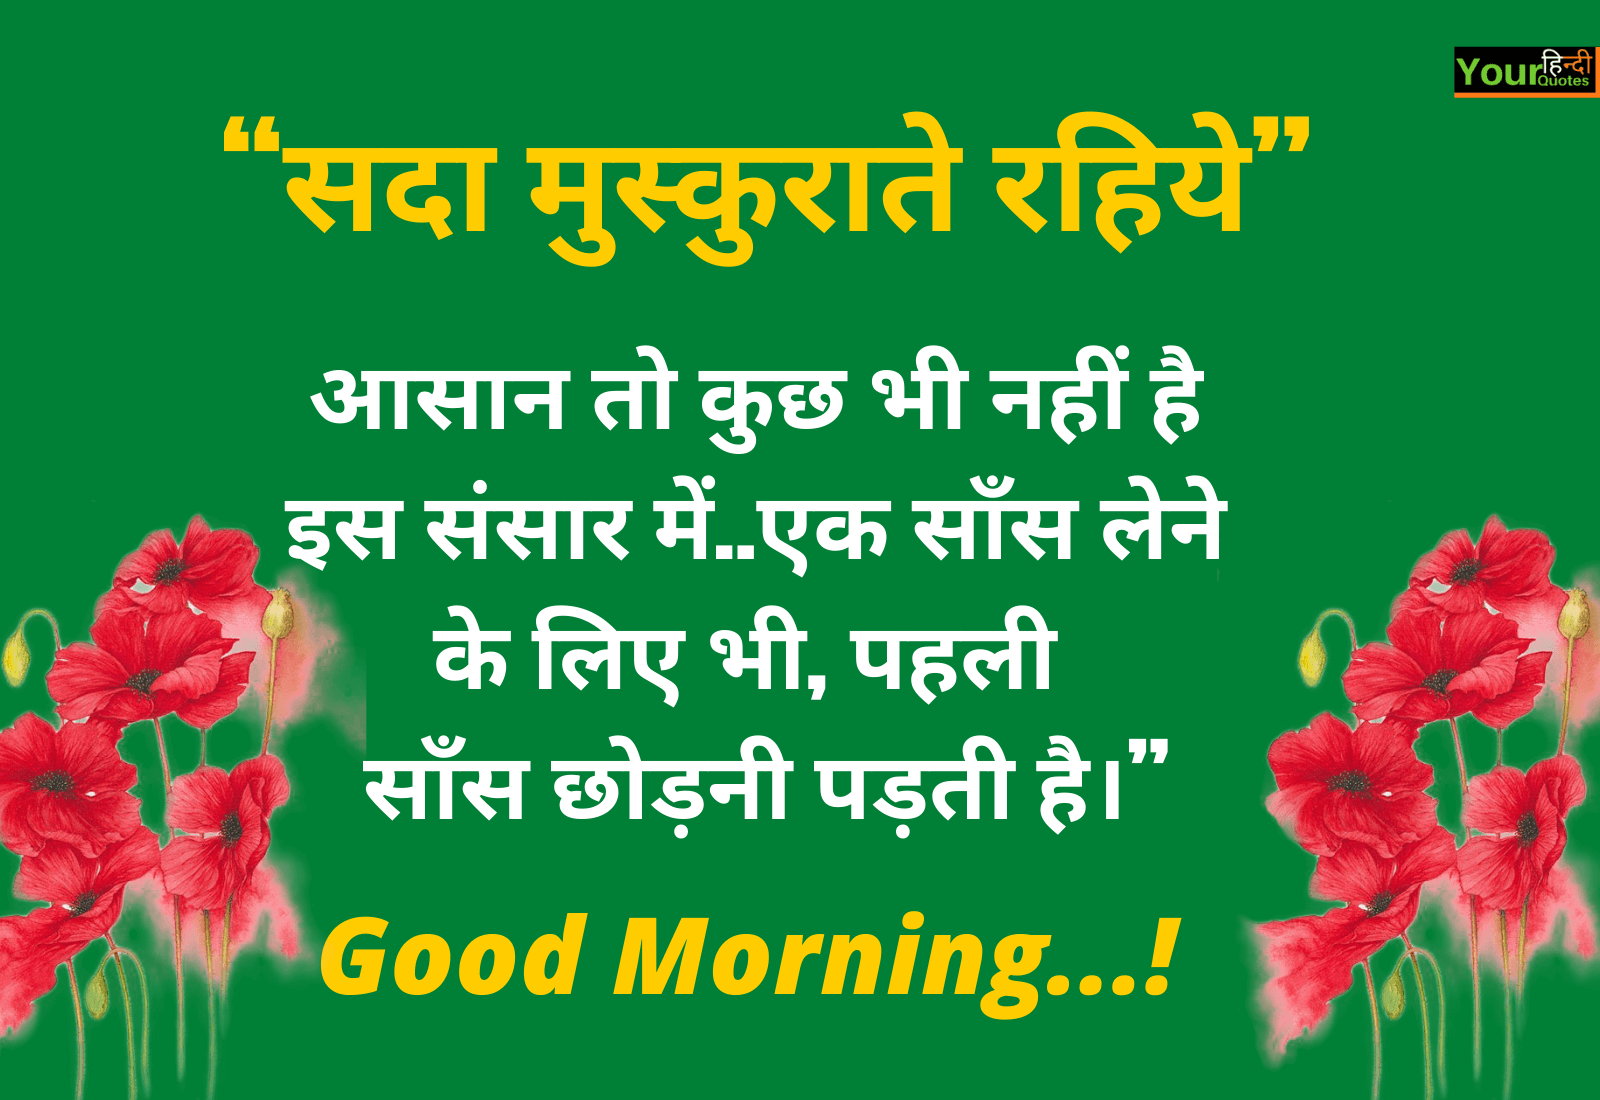 Good Morning Hindi Status Image